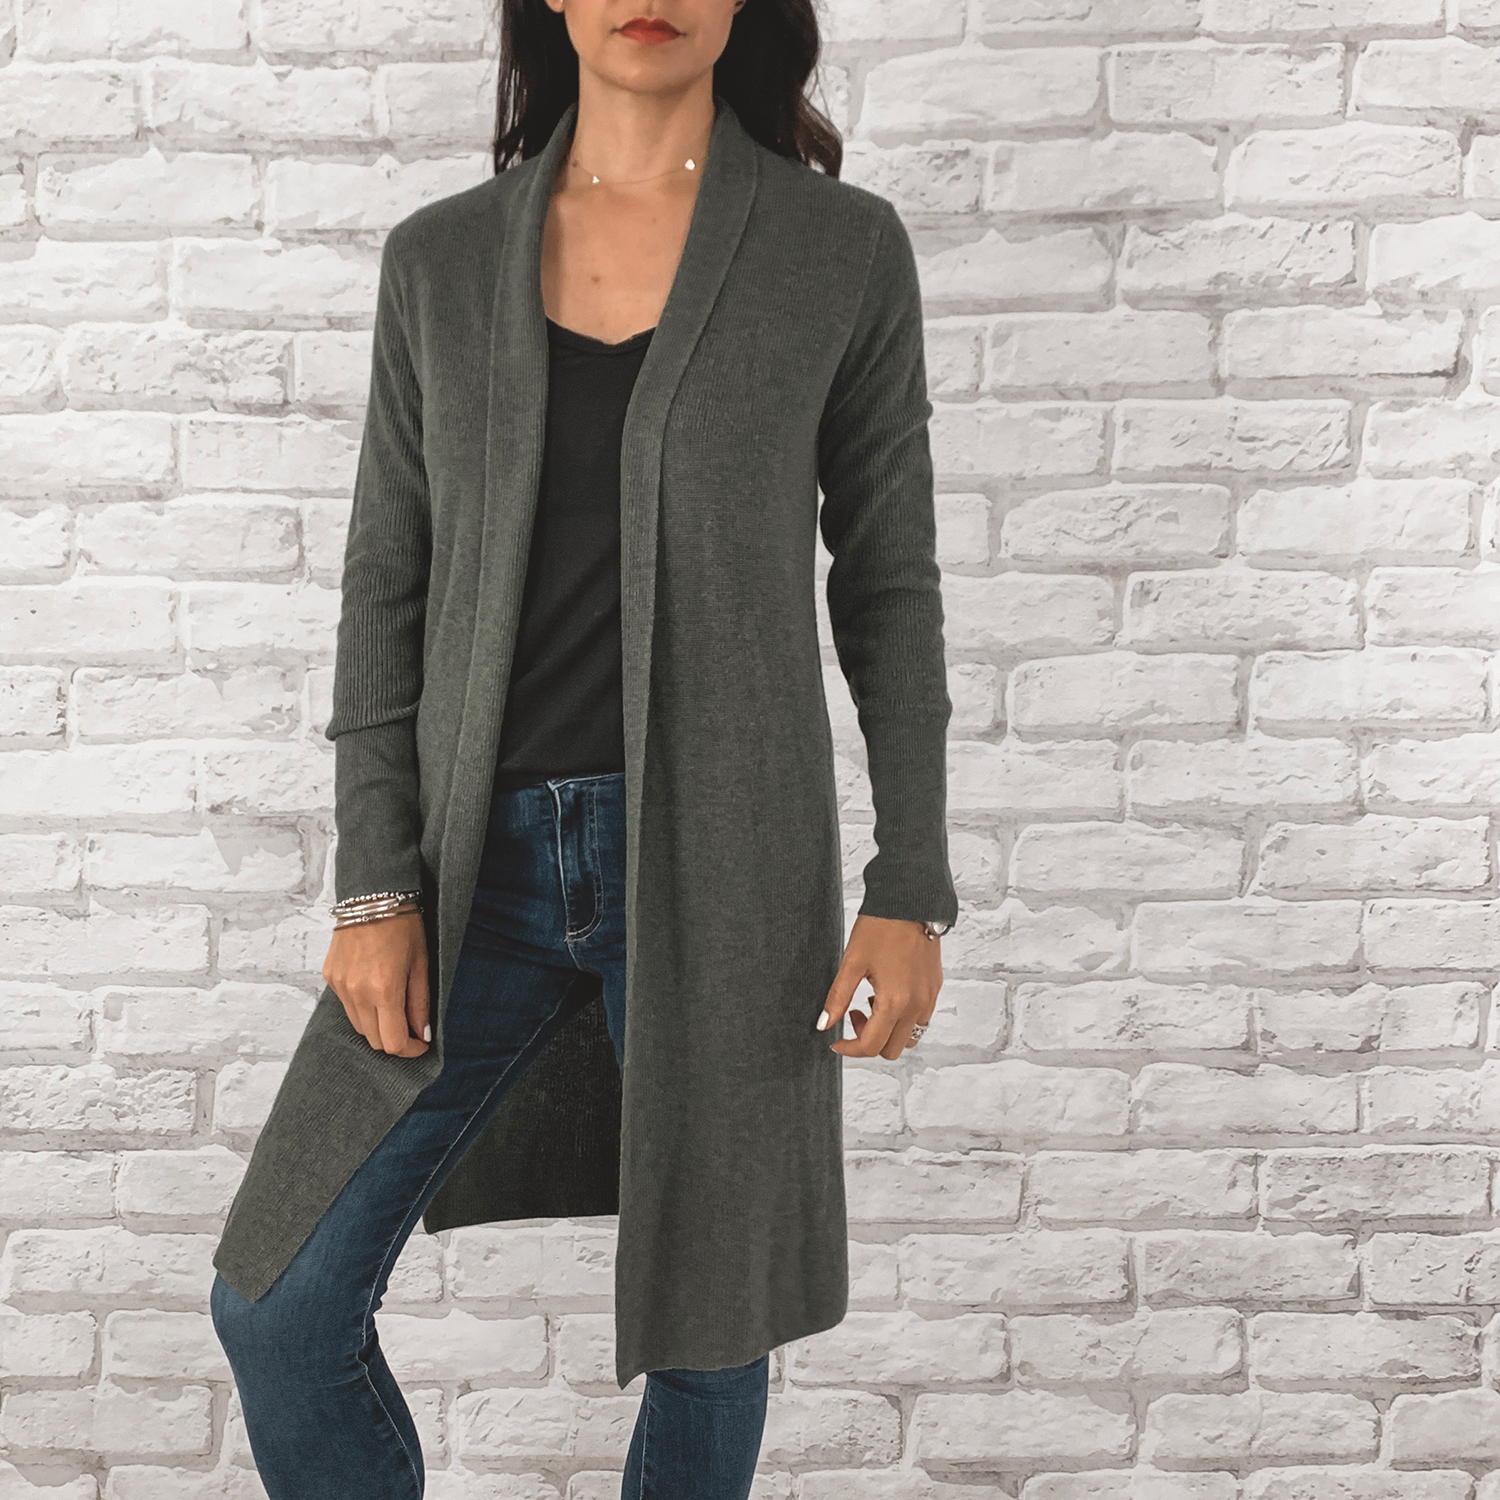 — OUTFIT DETAILS —    Leith Longline Cardigan      {Anniversary Price: $45.90 | After Sale: $69.00 | Wearing: Extra Small}  |   BP. Raw Edge Tee    {Anniversary Price: $15.90 | After Sale: $25.00 |Wearing: Small}  |   AG Farrah High Waisted Skinny Jeans      {Anniversary Price: $149.90 | After Sale: $225.00 |Wearing: 26}    — CCW DETAILS —    Blacksmith Tactical Holster with UltiClip     | Glock 43